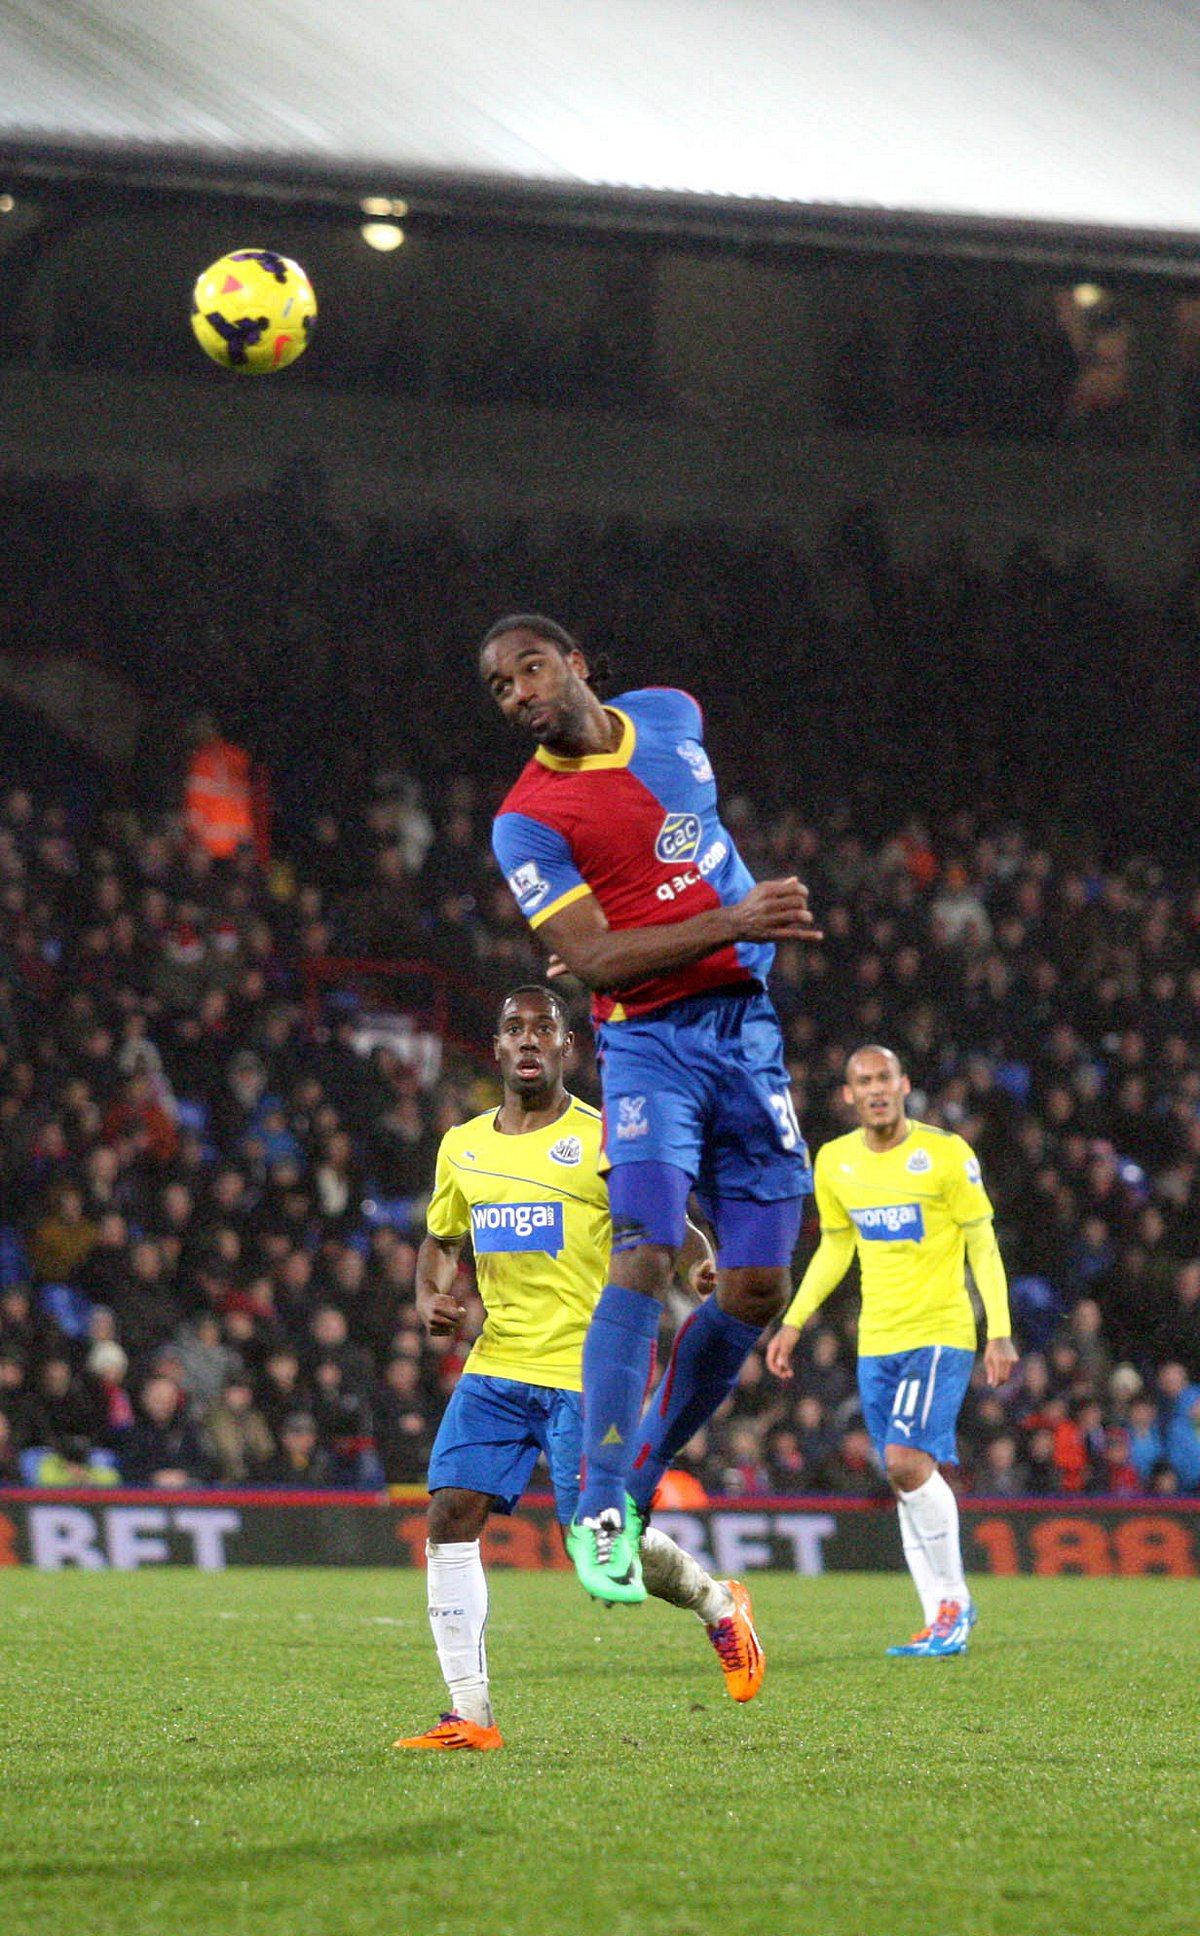 Doing the donkey work: Cameron Jerome does the things that go unnoticed                 SP78371